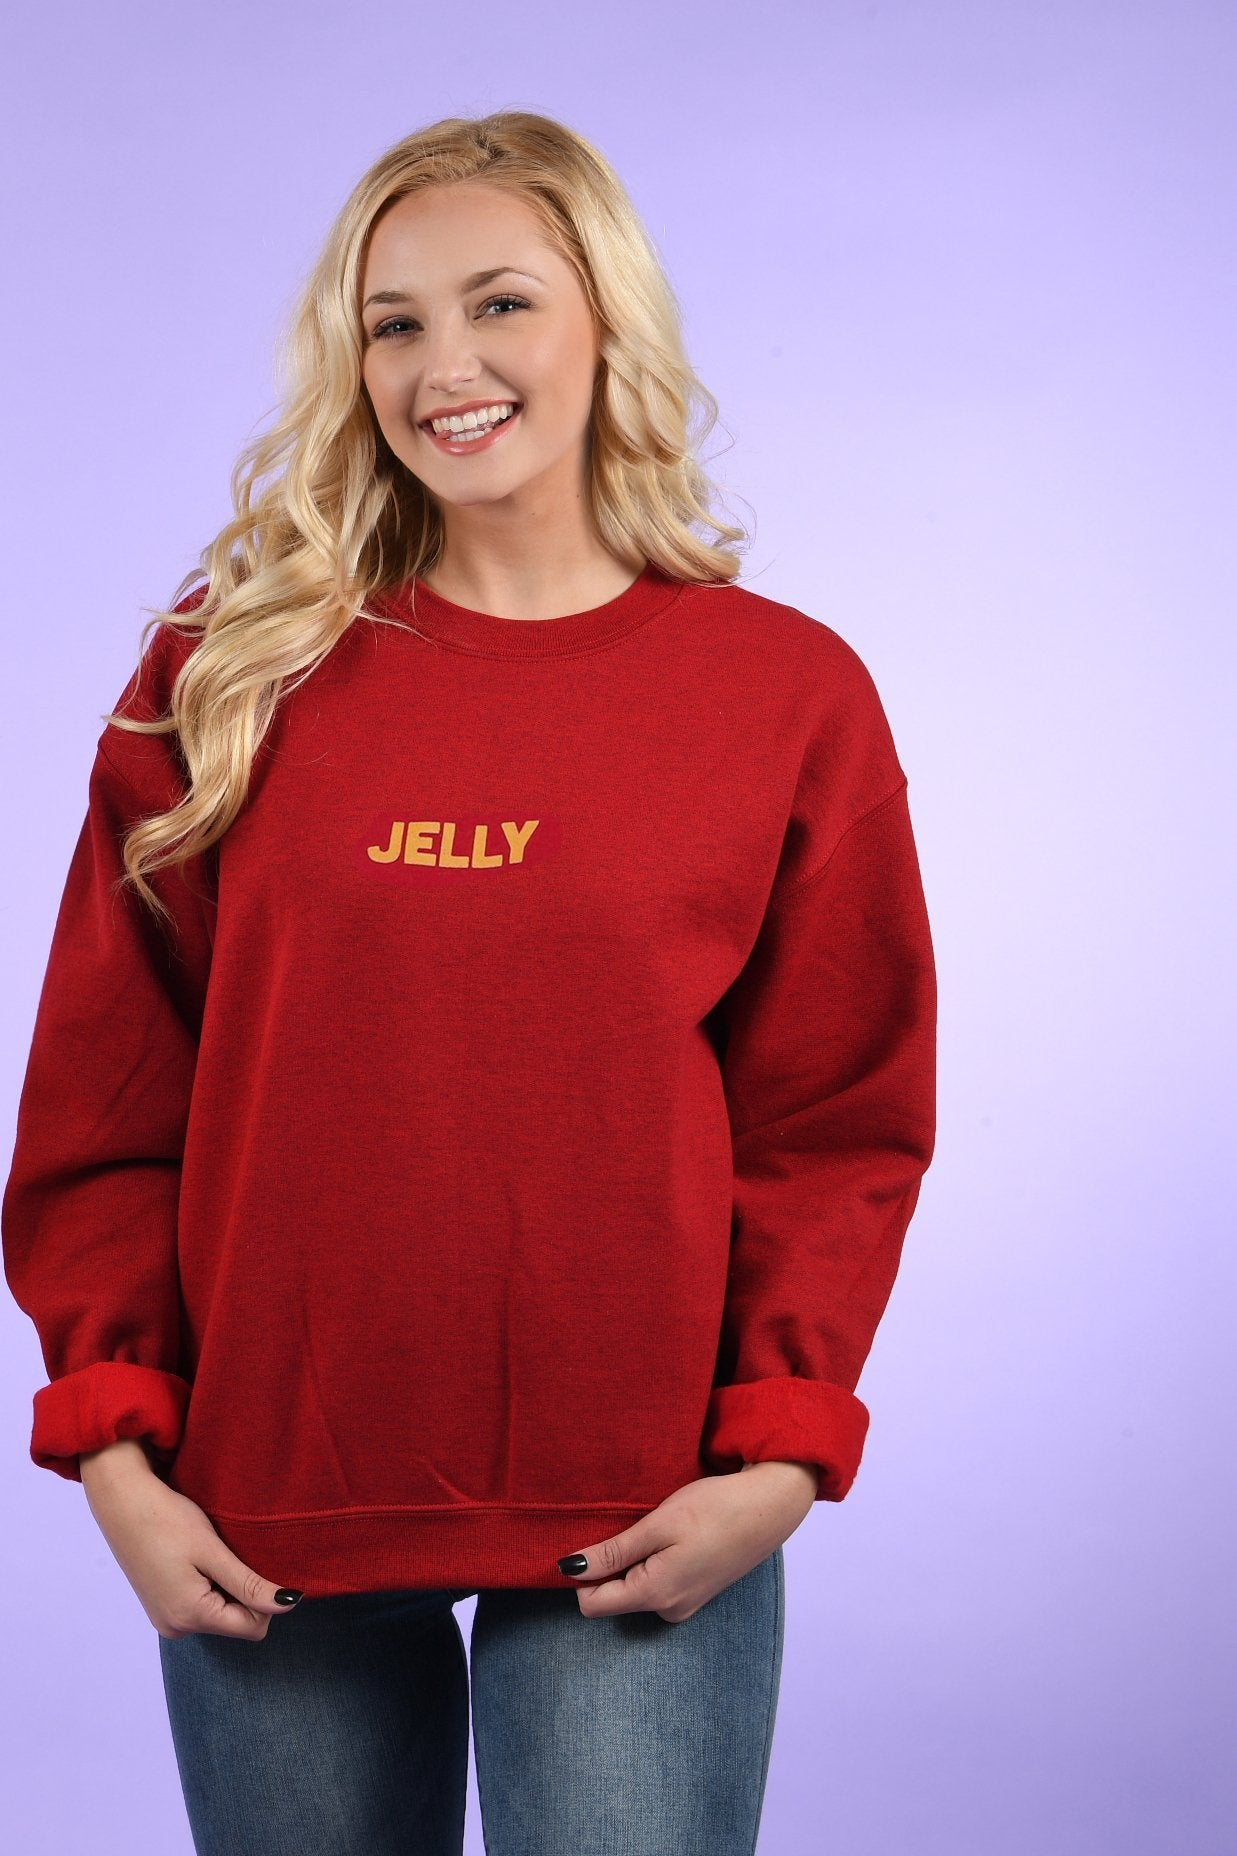 jelly crew neck